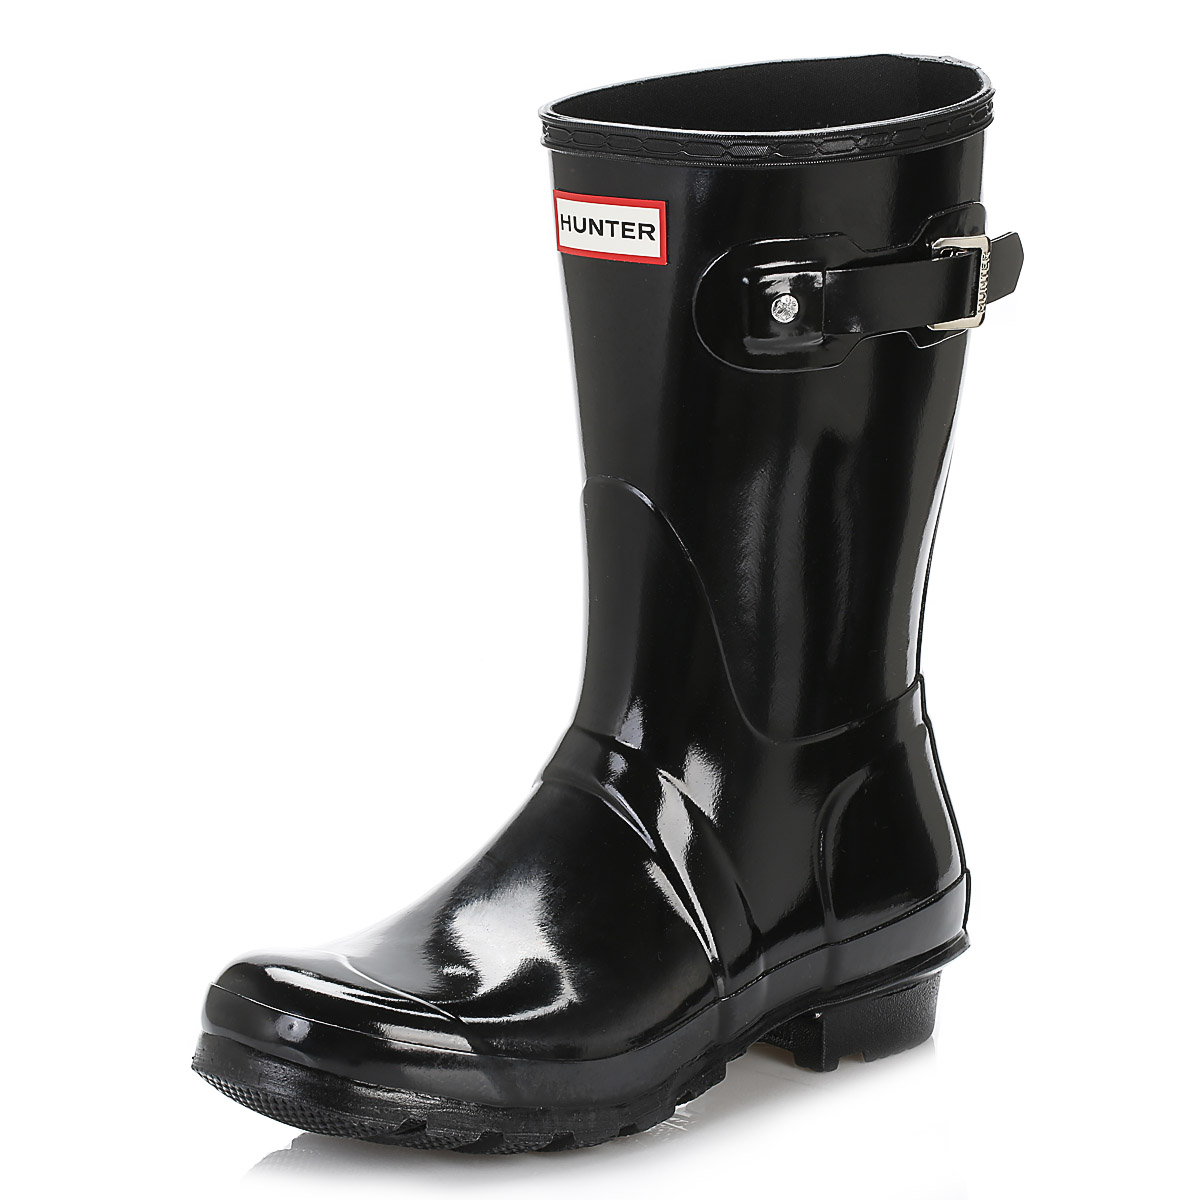 Hunter Women High/Short Wellington Boots Ladies Glossy Rubber Tall Wellies Shoes | eBay